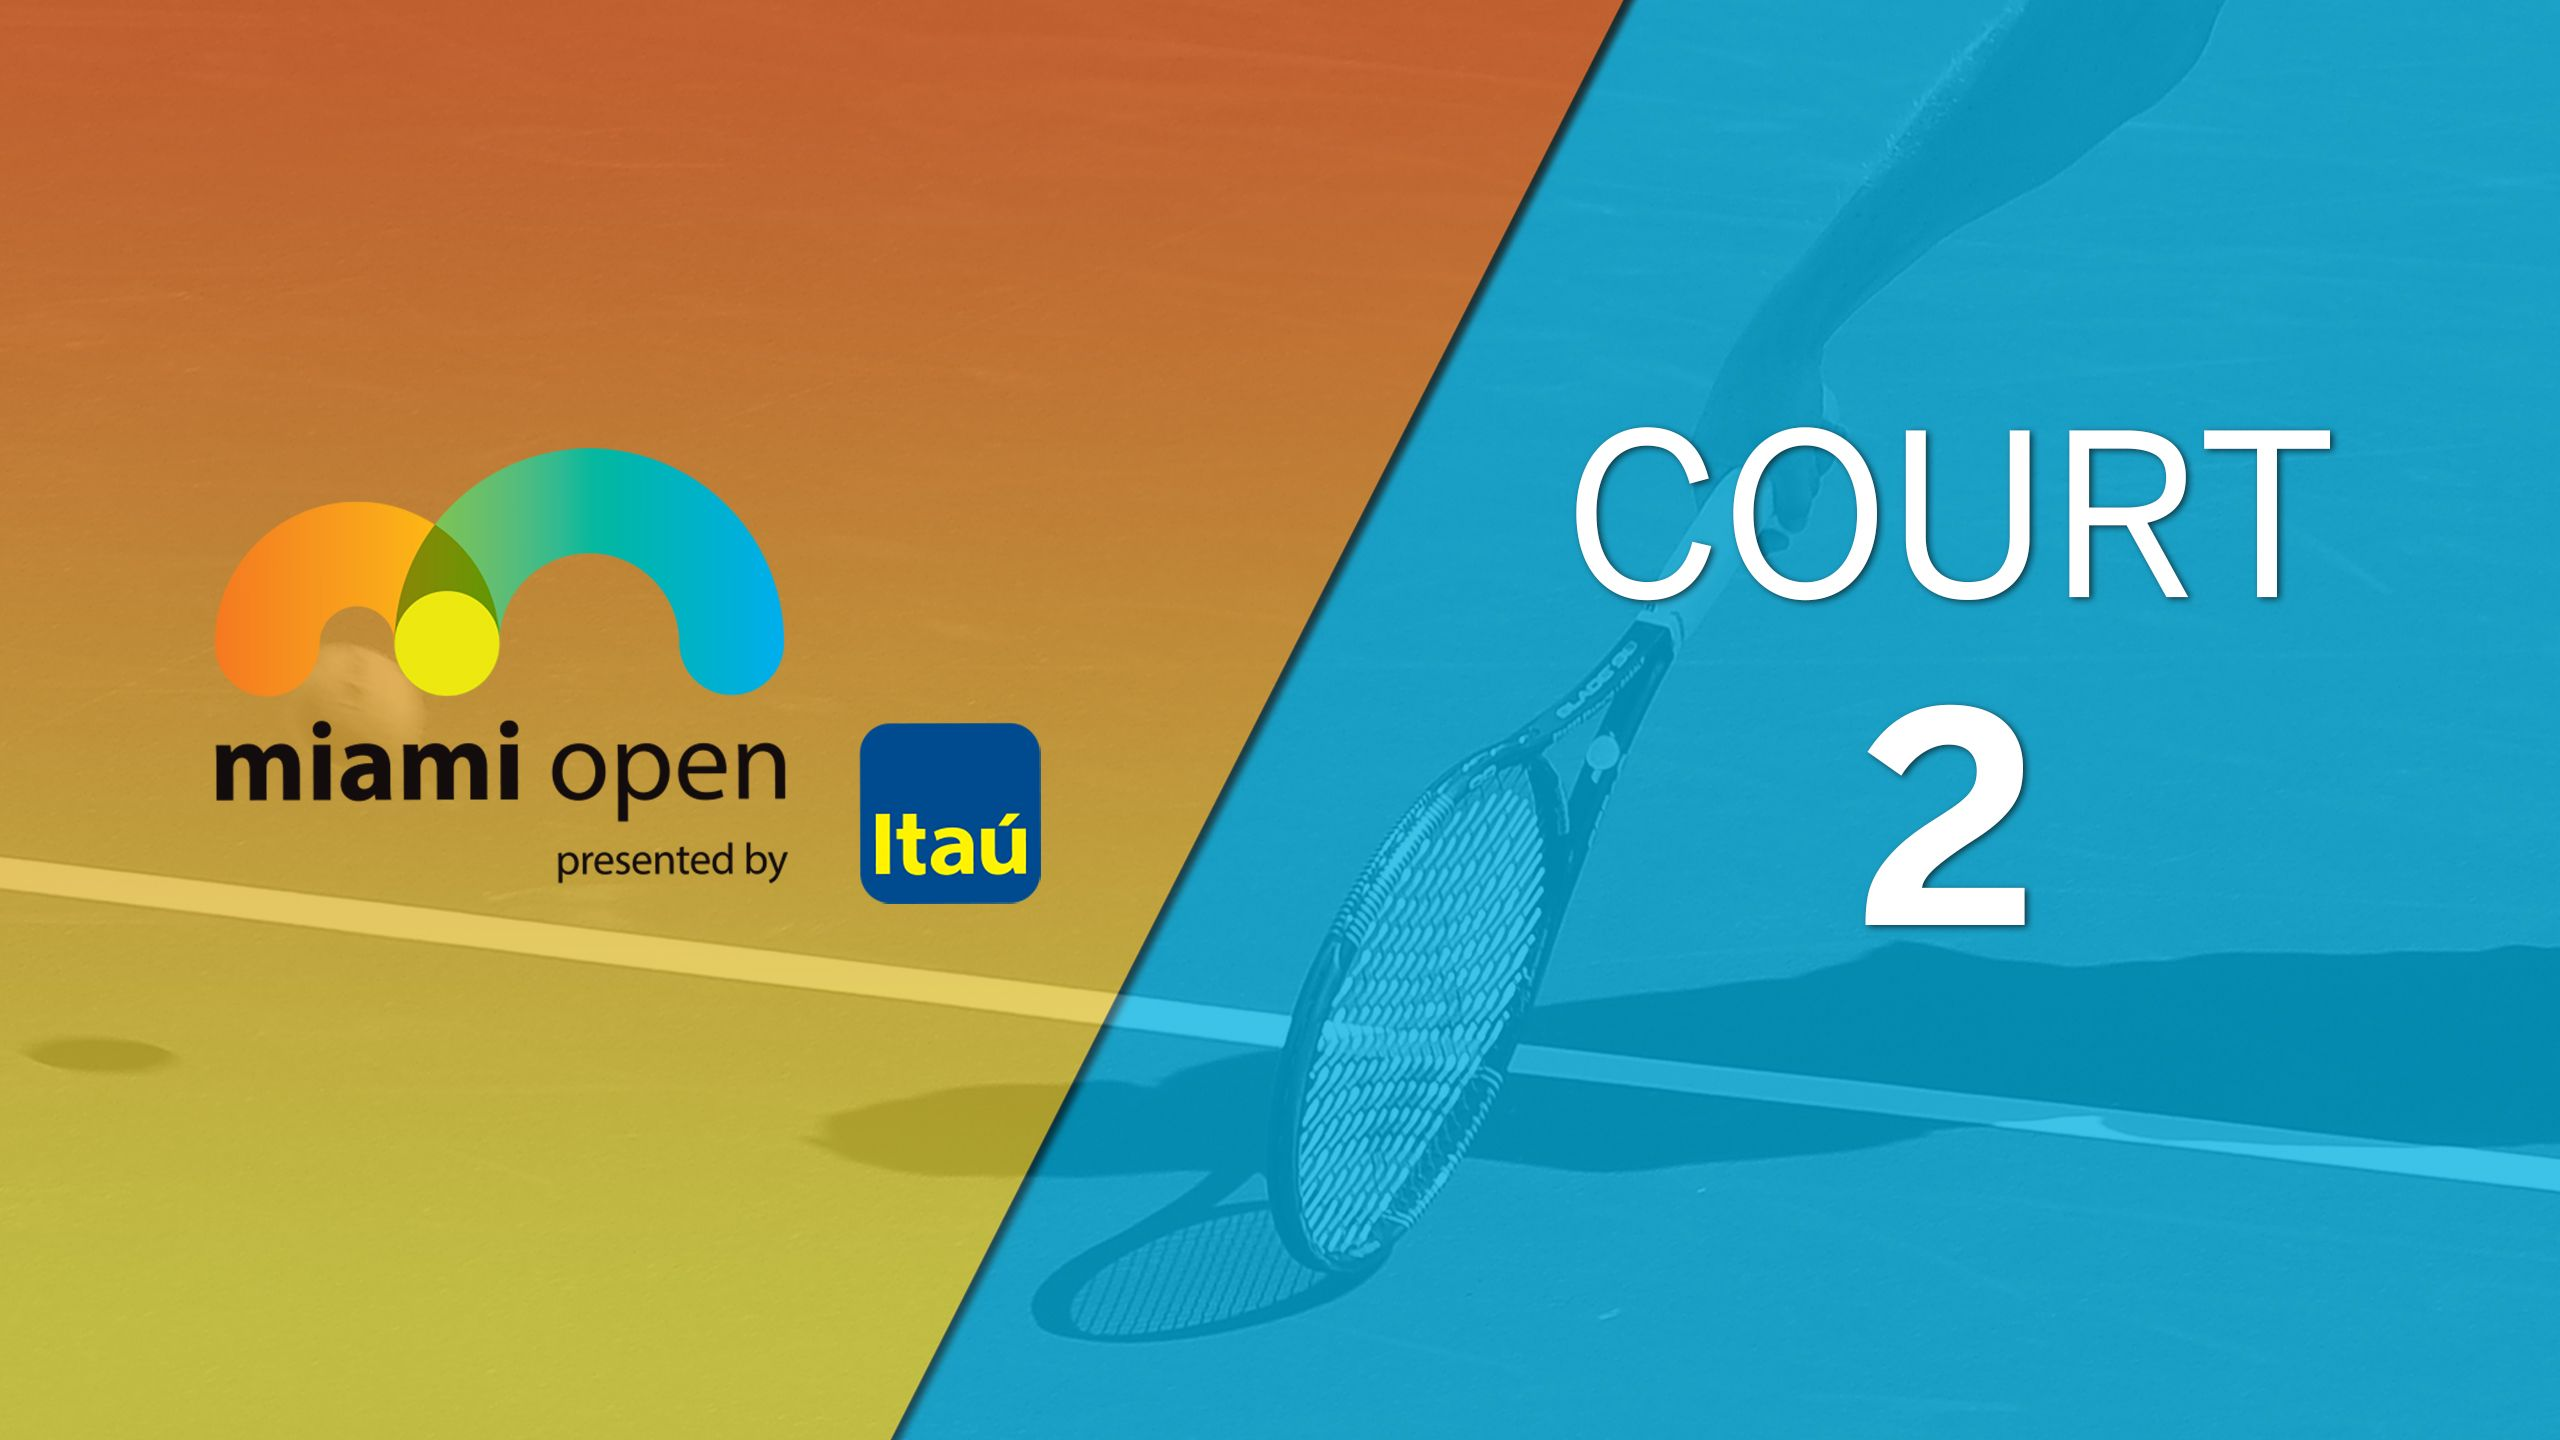 Miami Open - Court 2 (Second Round)